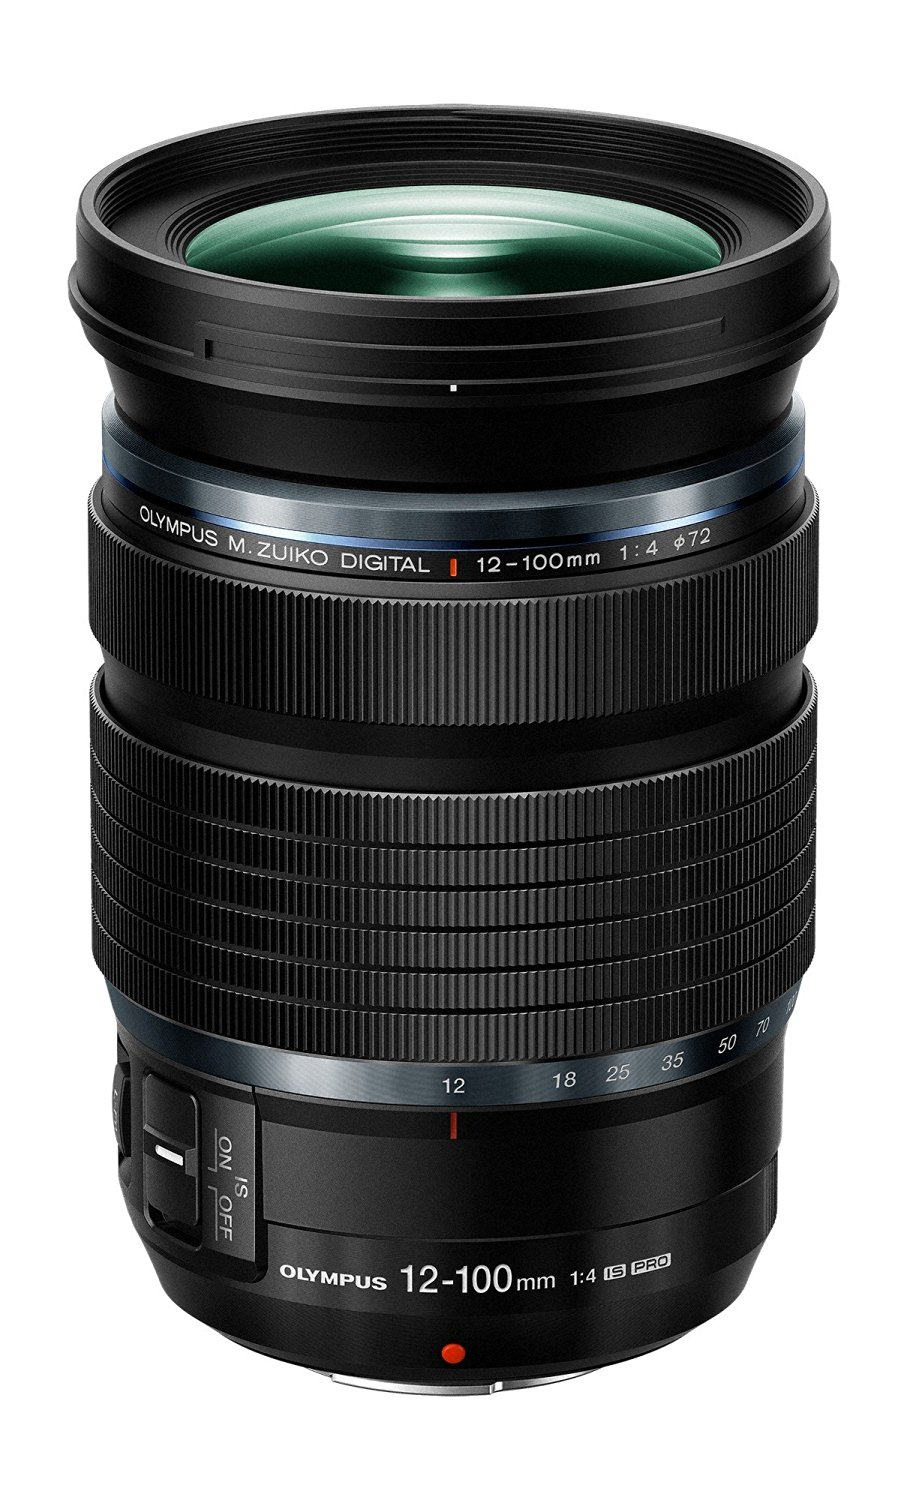 amazon product image of the front of the 12-100mm f4.0 PRO